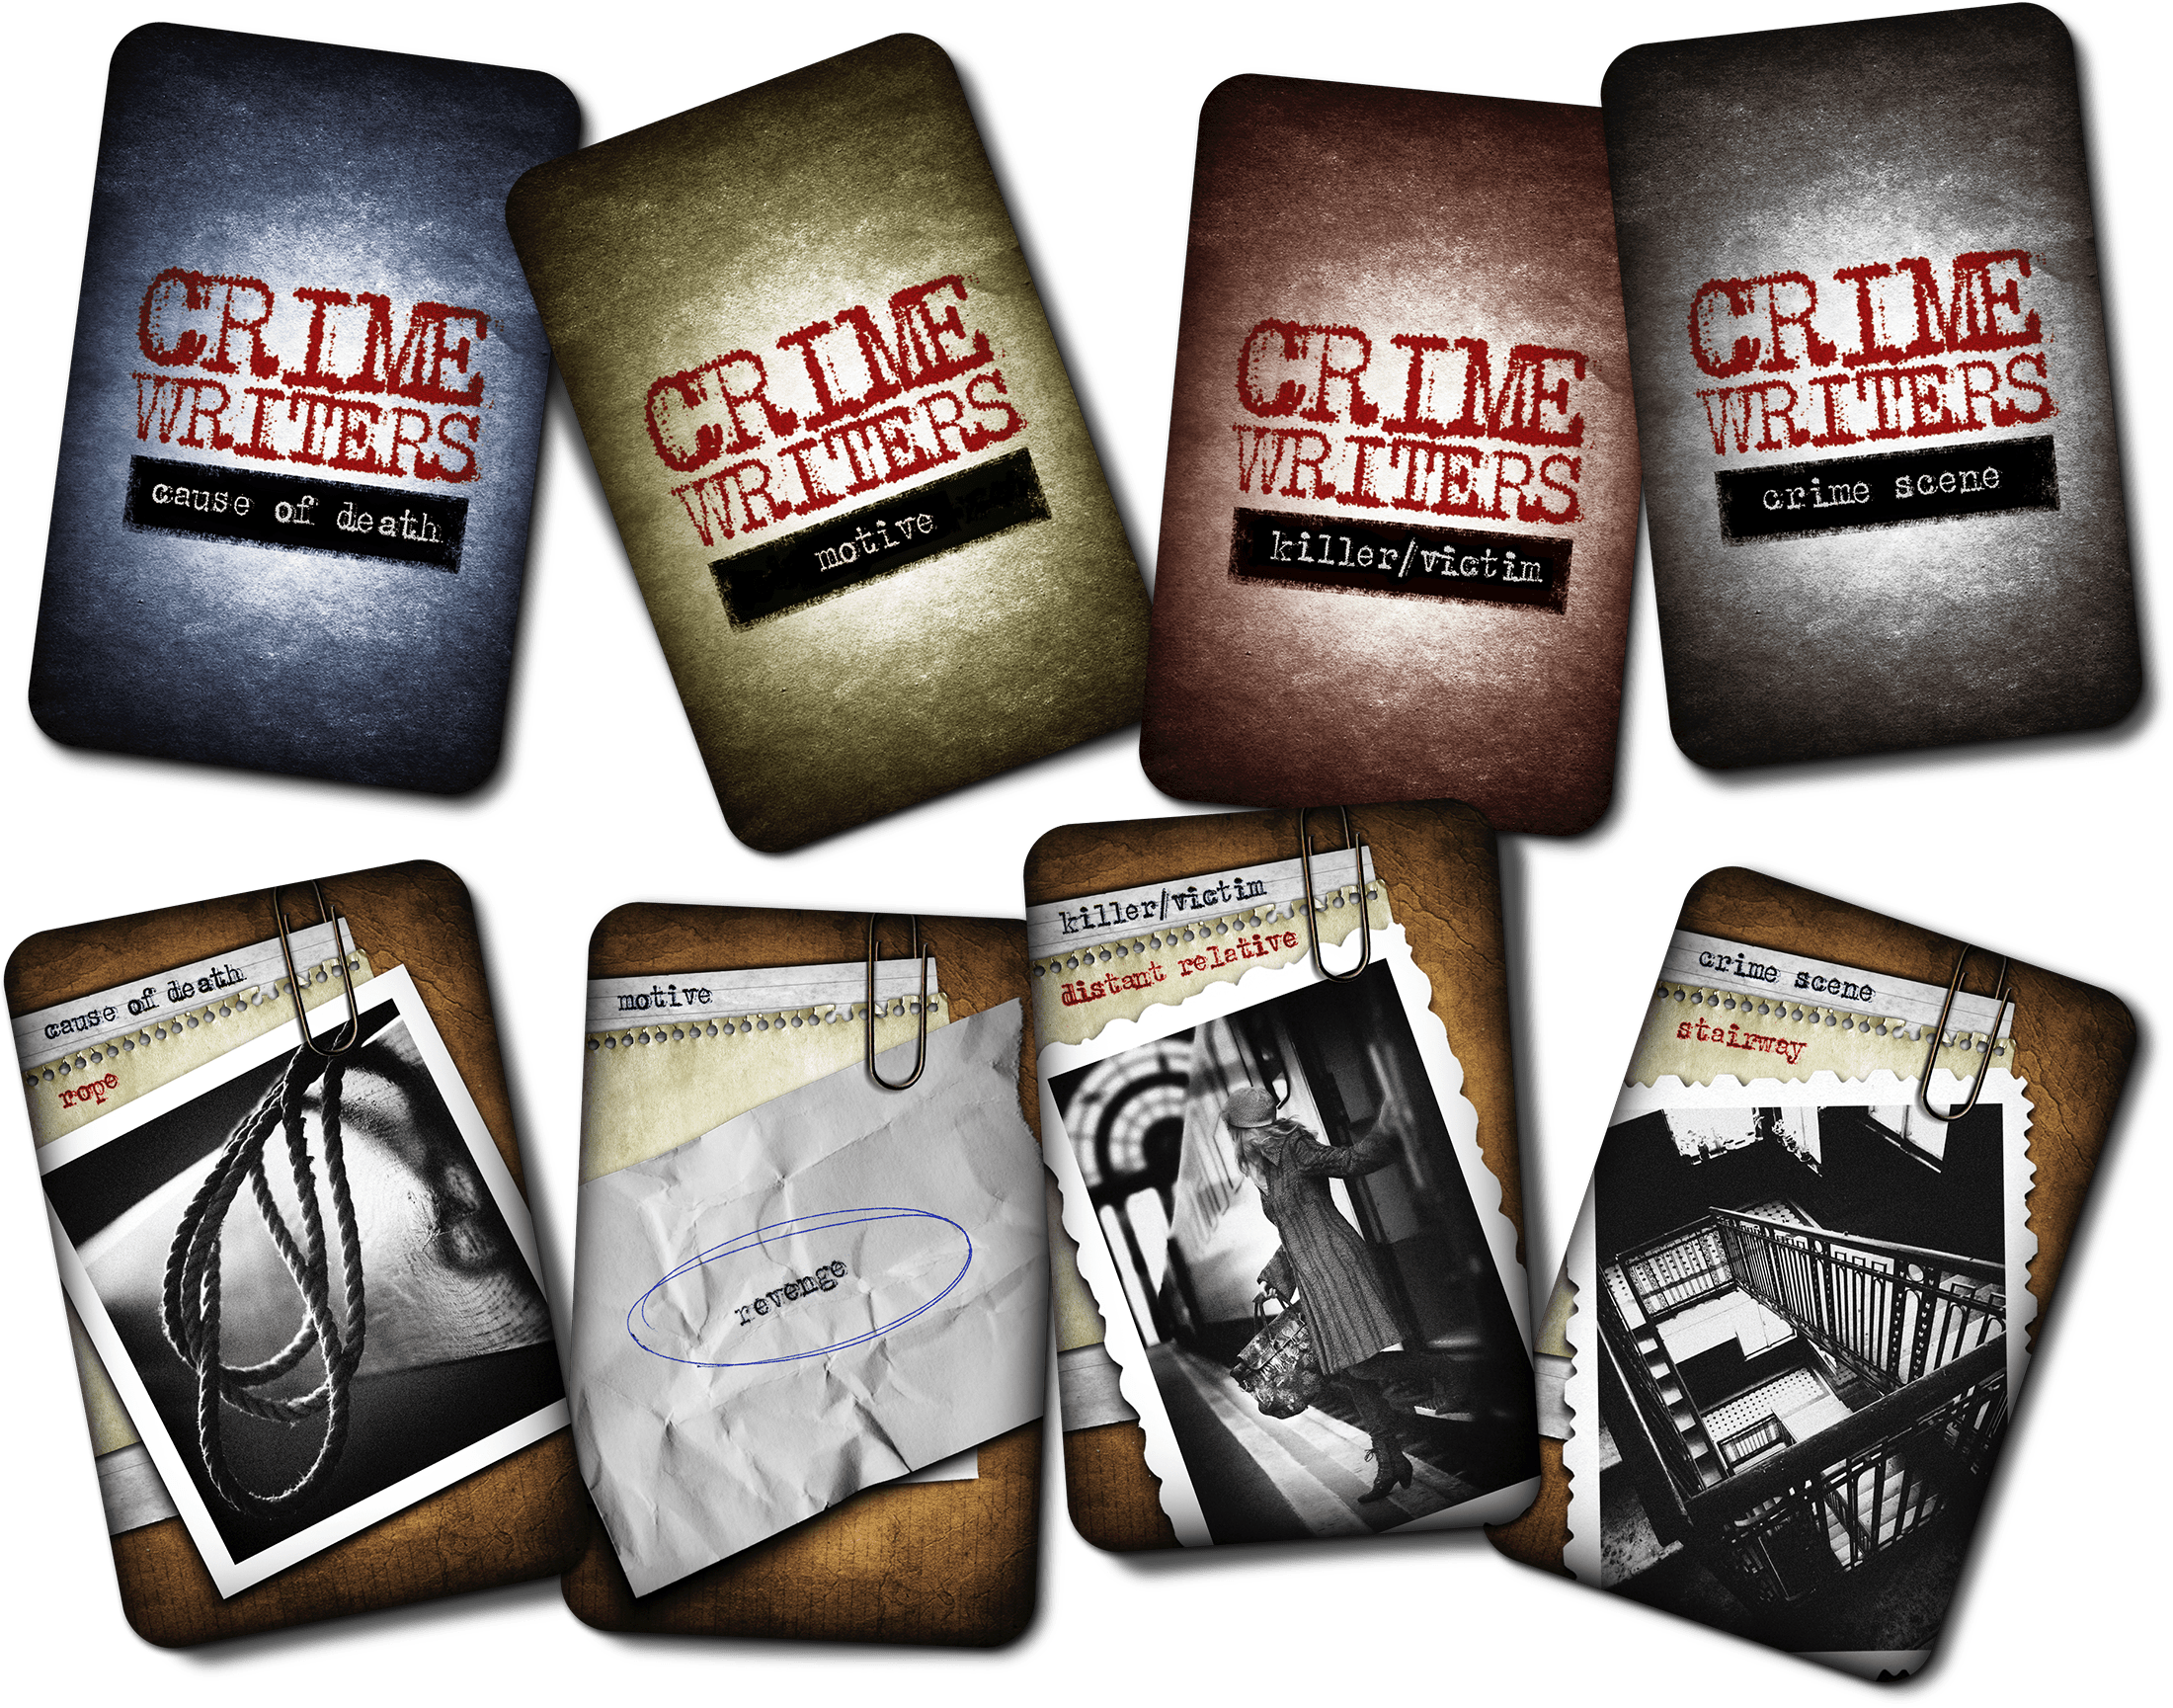 card types | 20 cause of death cards | 16 motive cards | 20 crime scene cards | 30 killer or victim cards